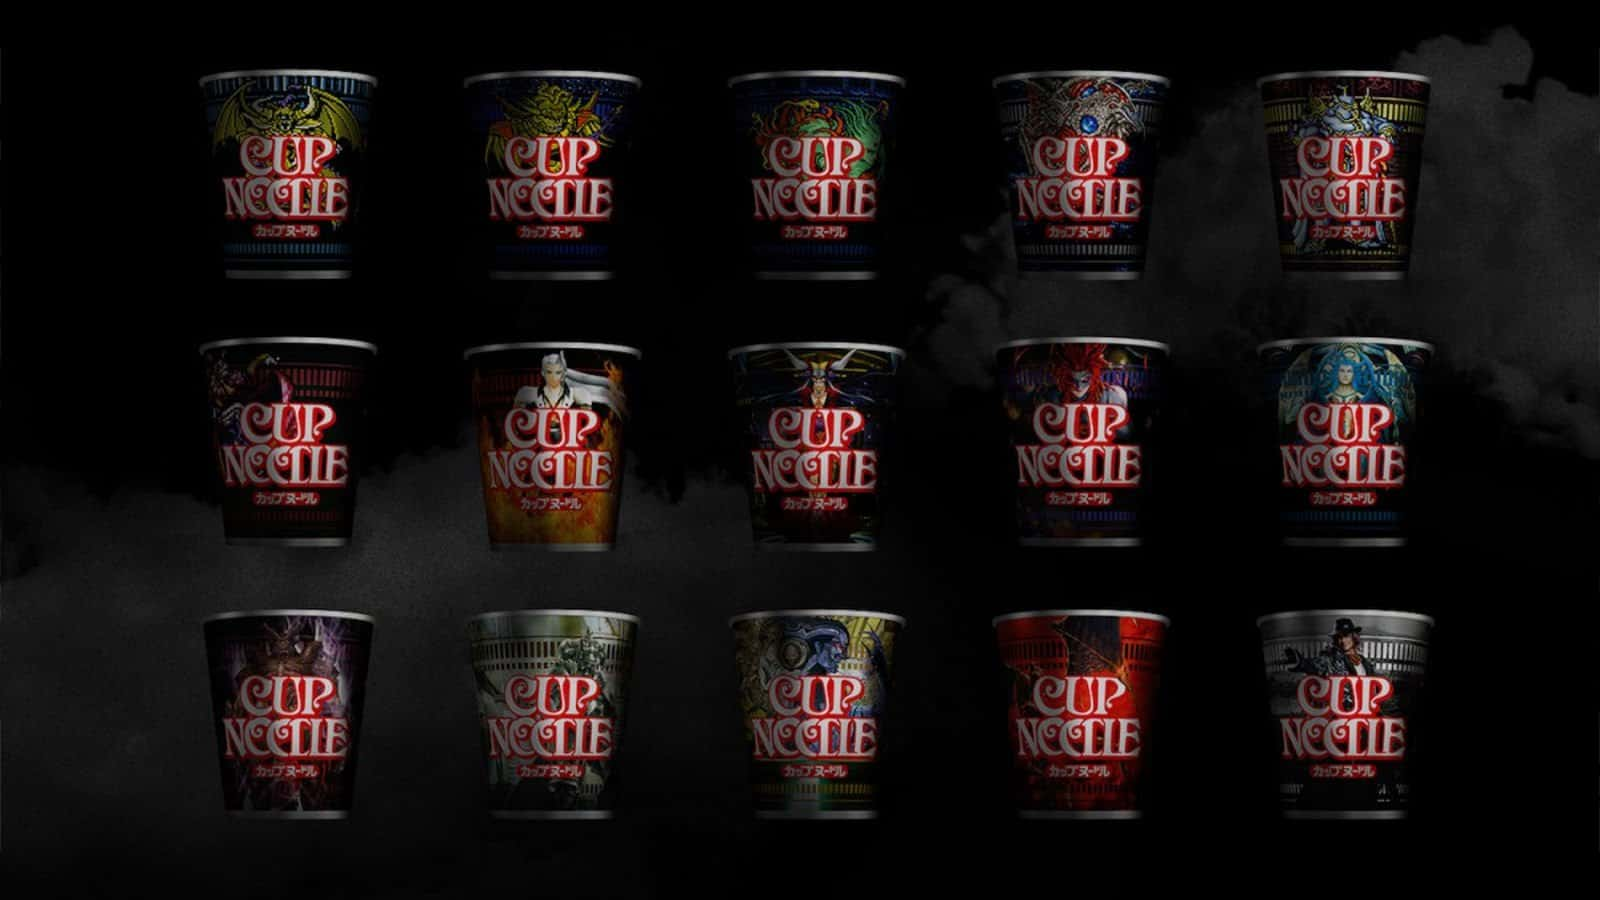 Vamers - FYI - Geekosphere - Behold Ultima Weapon Forks for the serious Cup Noodle enthusiast - 01